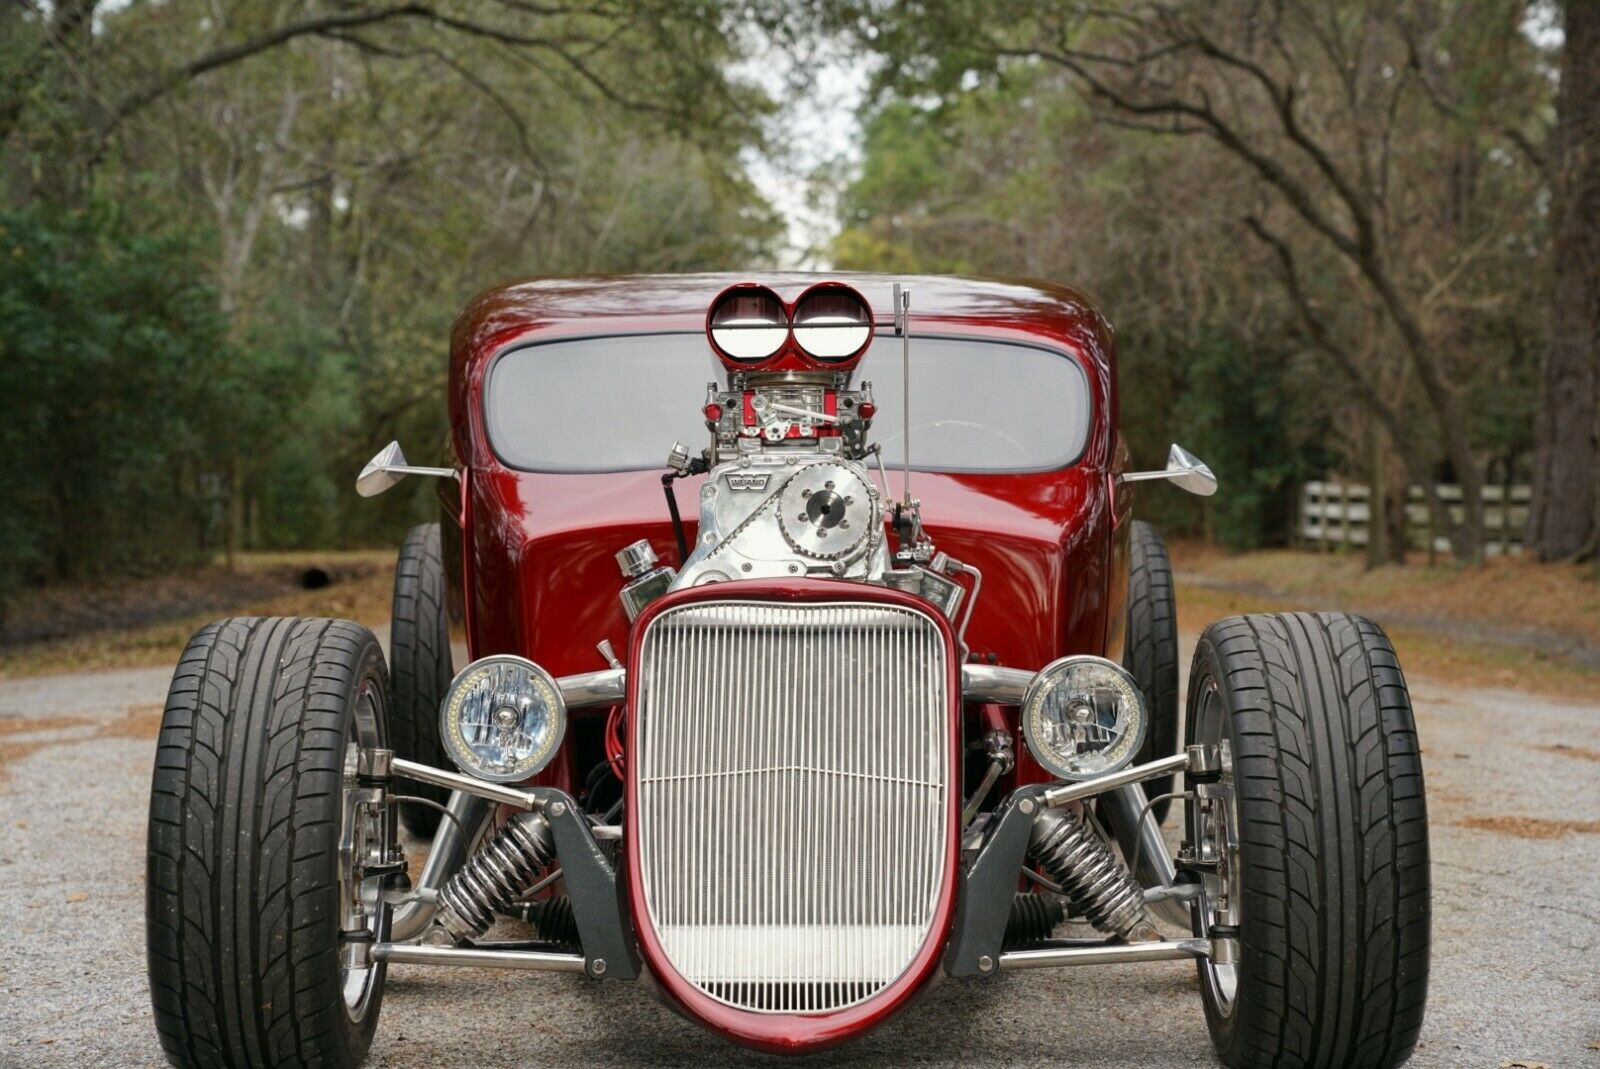 1933 FORD COUPE SPEED STAR CUSTOM SHOW WINNER  - FREE SHIPPING